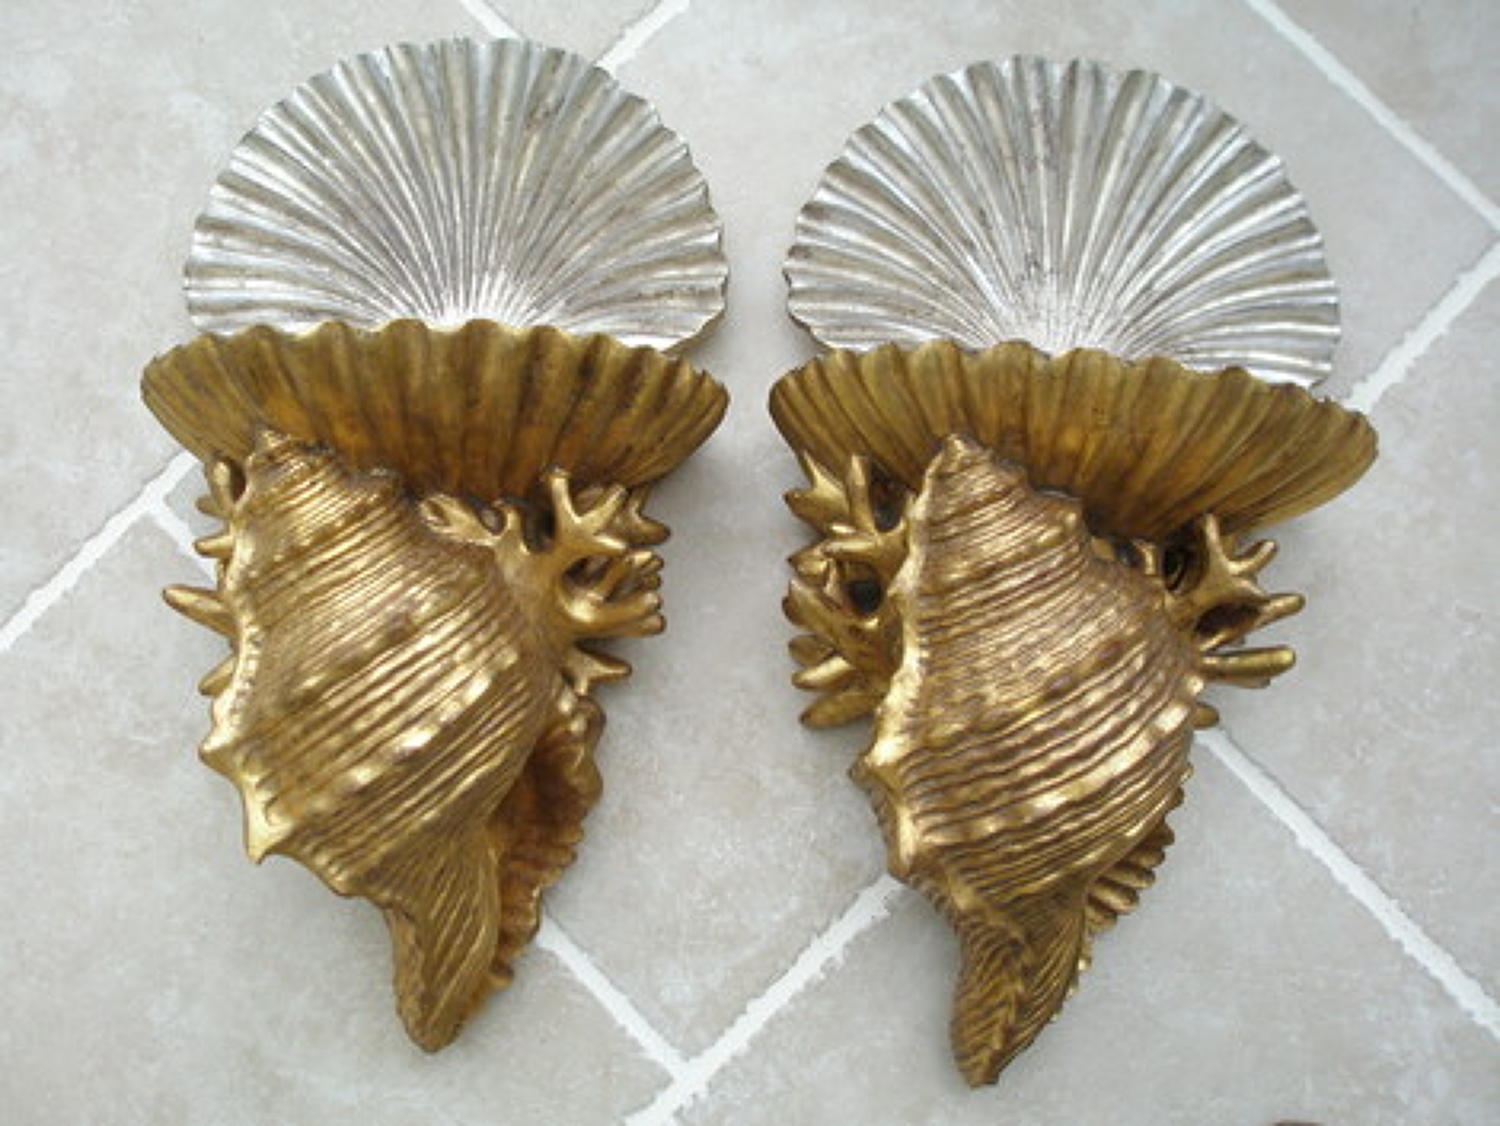 Pair of decorative shell brackets